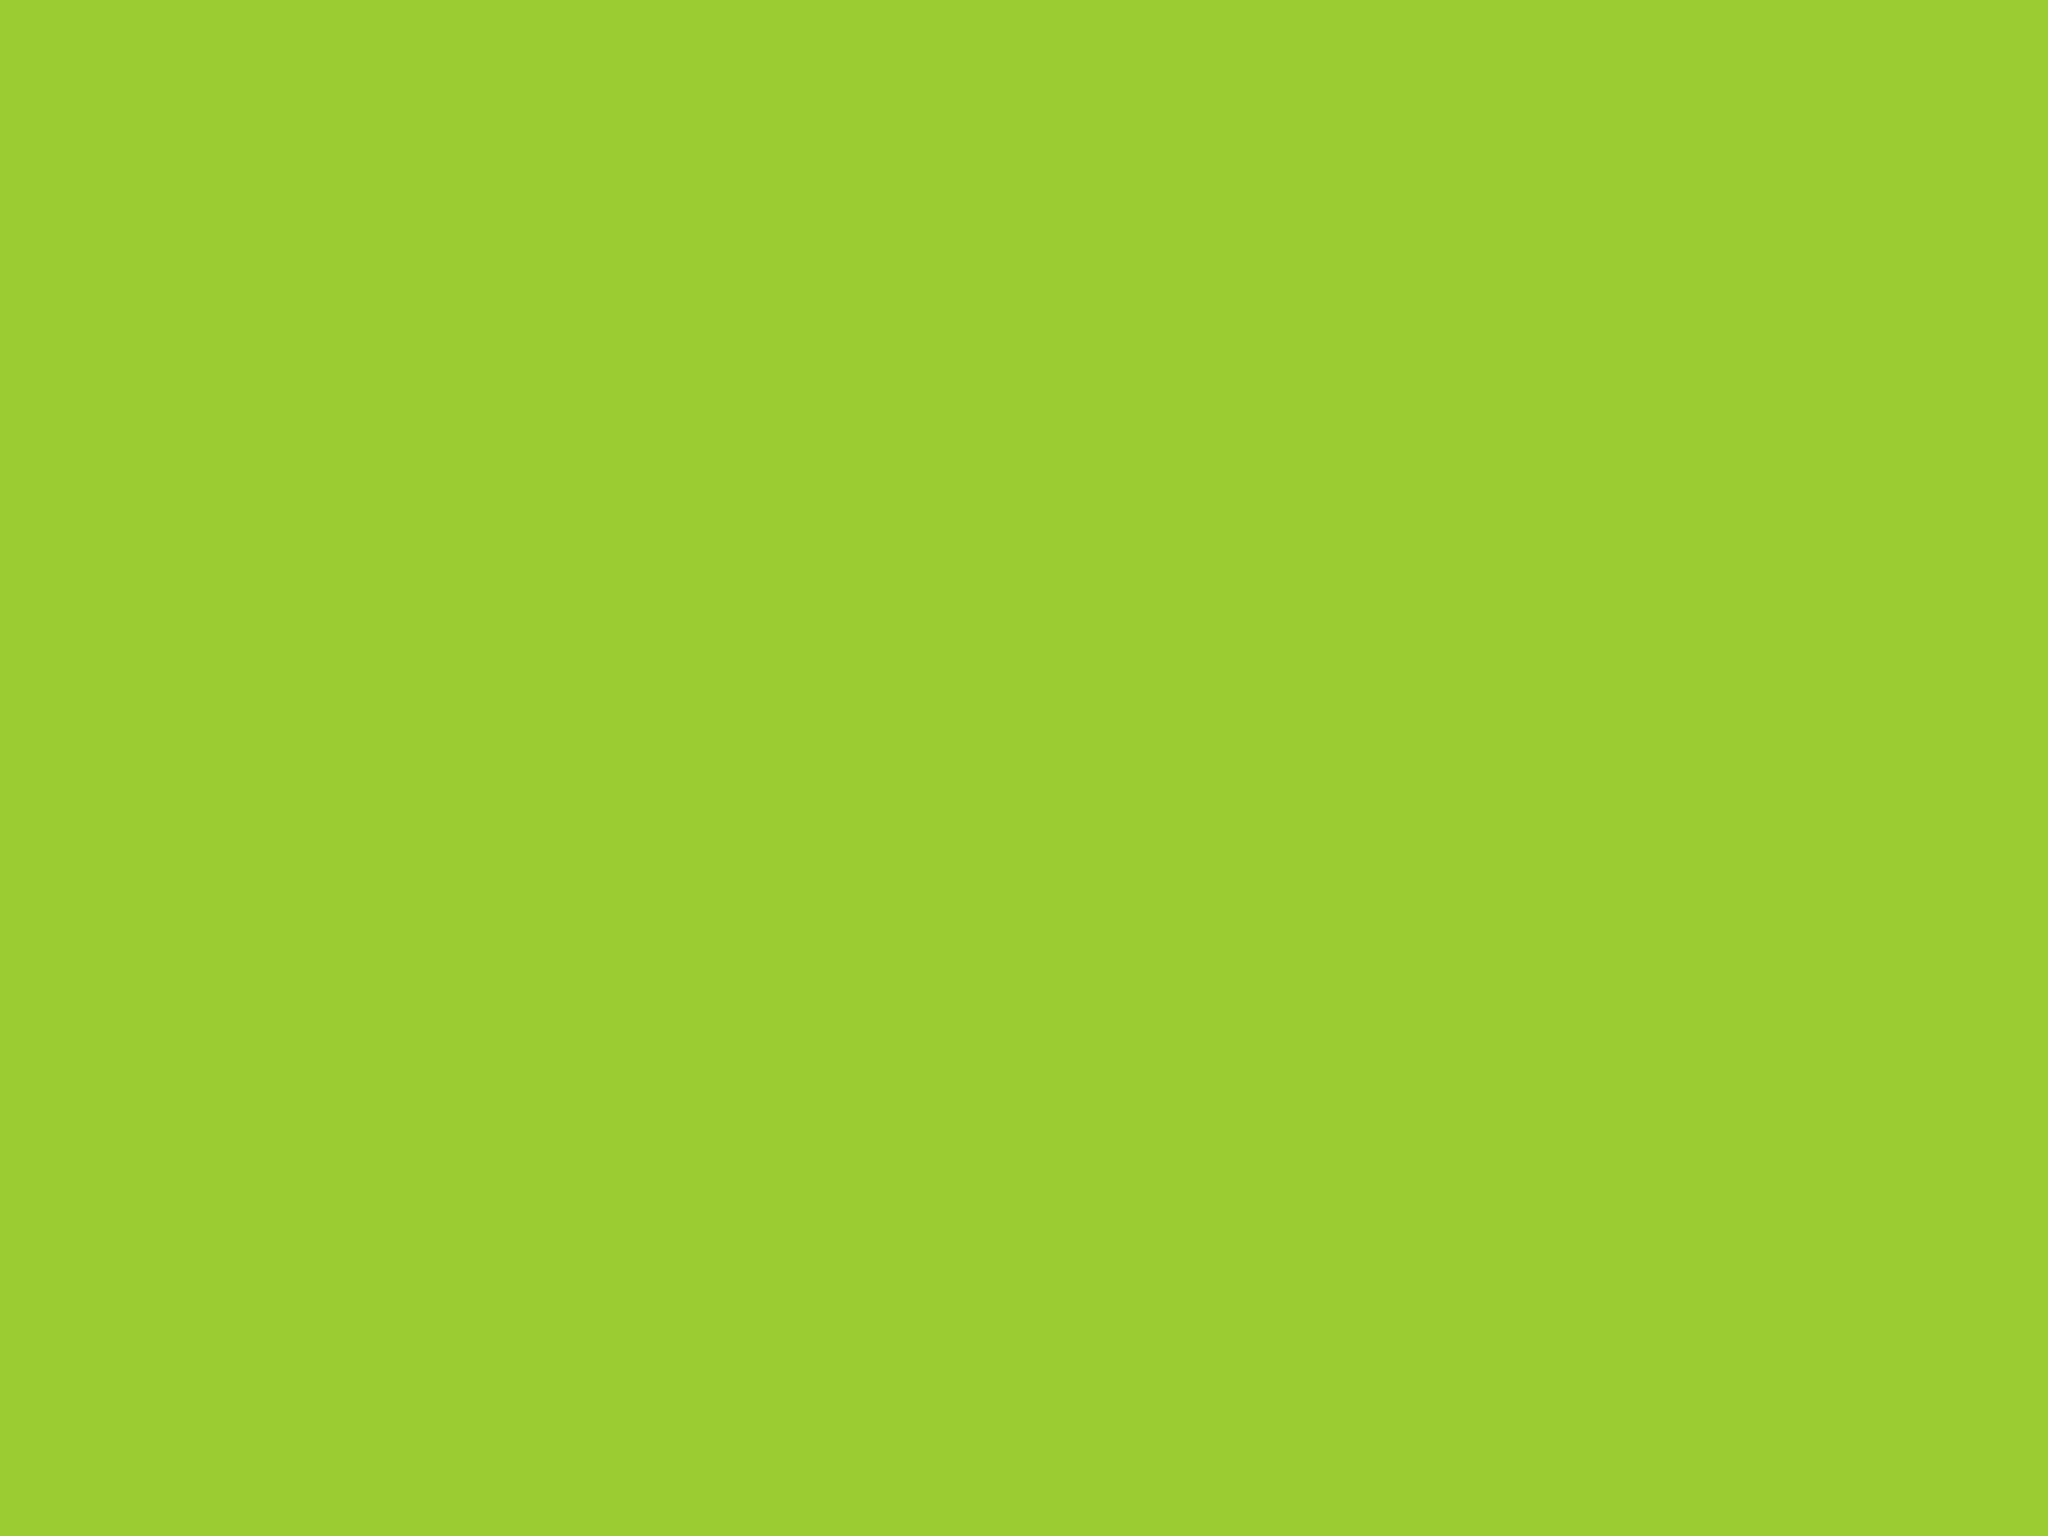 2048x1536 Yellow-green Solid Color Background